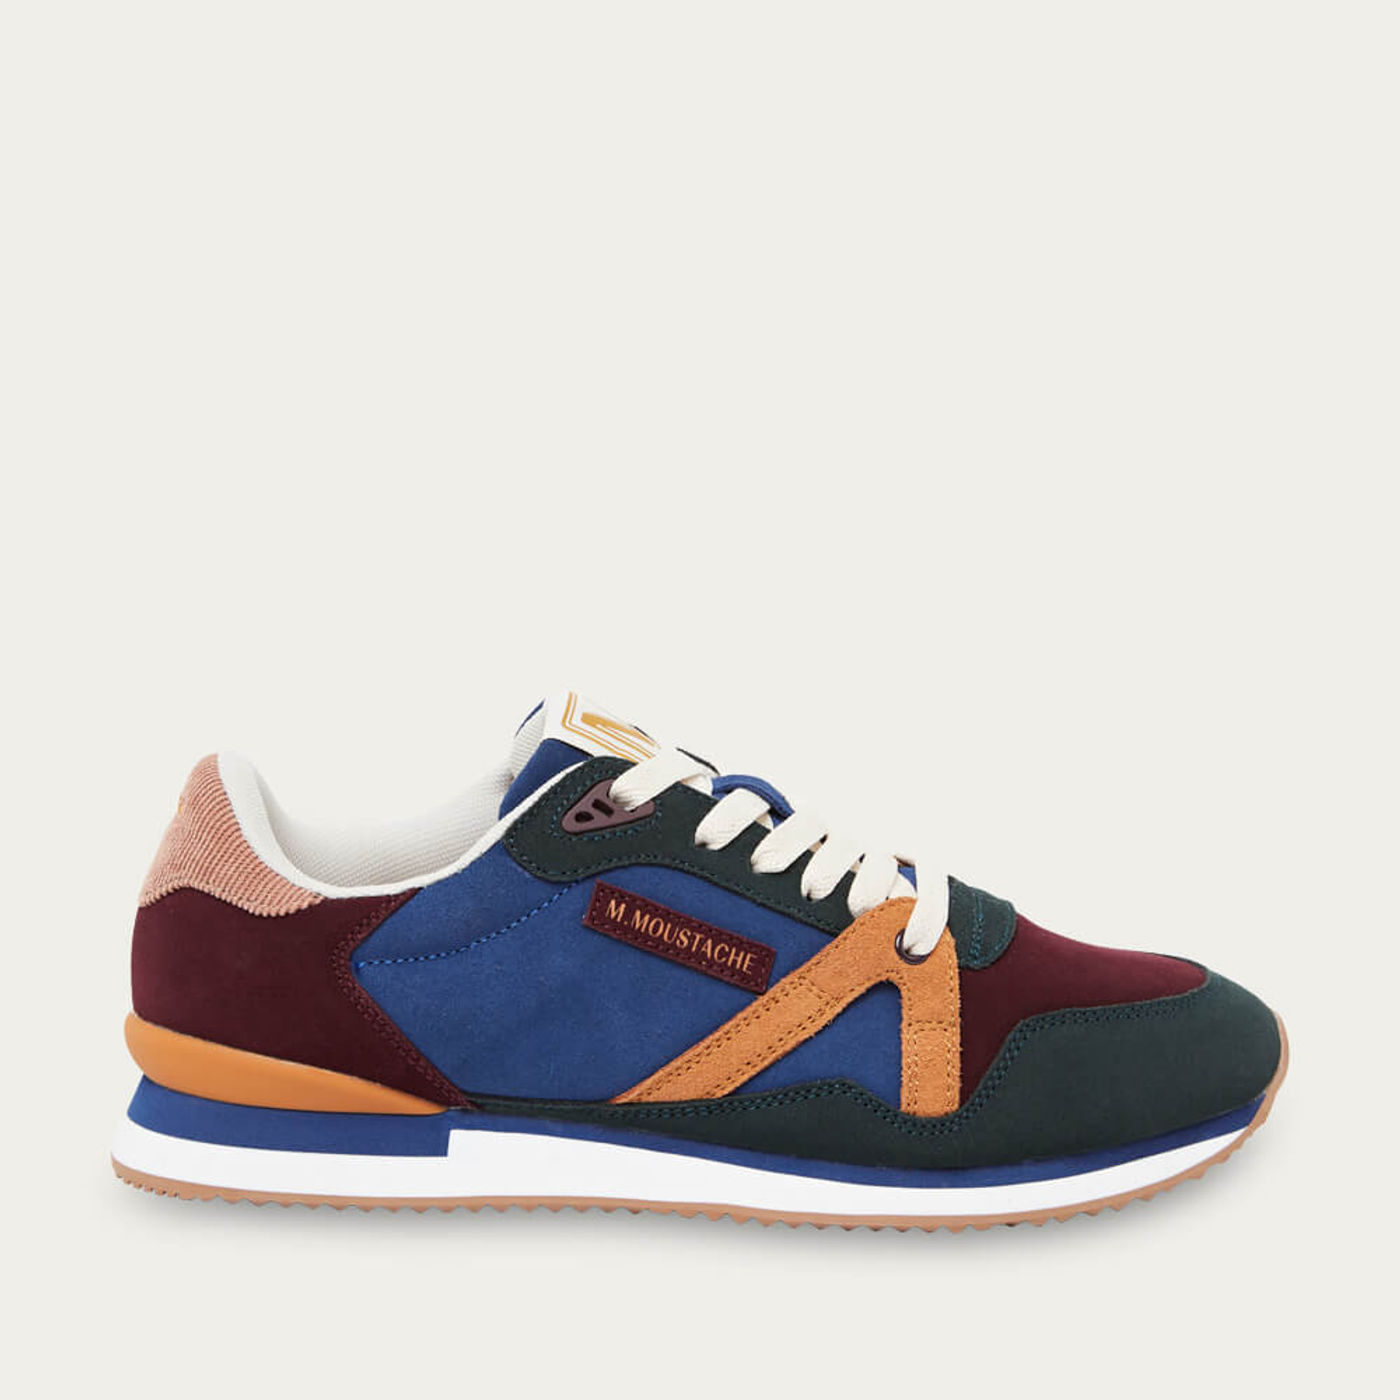 Blue Green and Burgundy Suede André Running Shoes | Bombinate